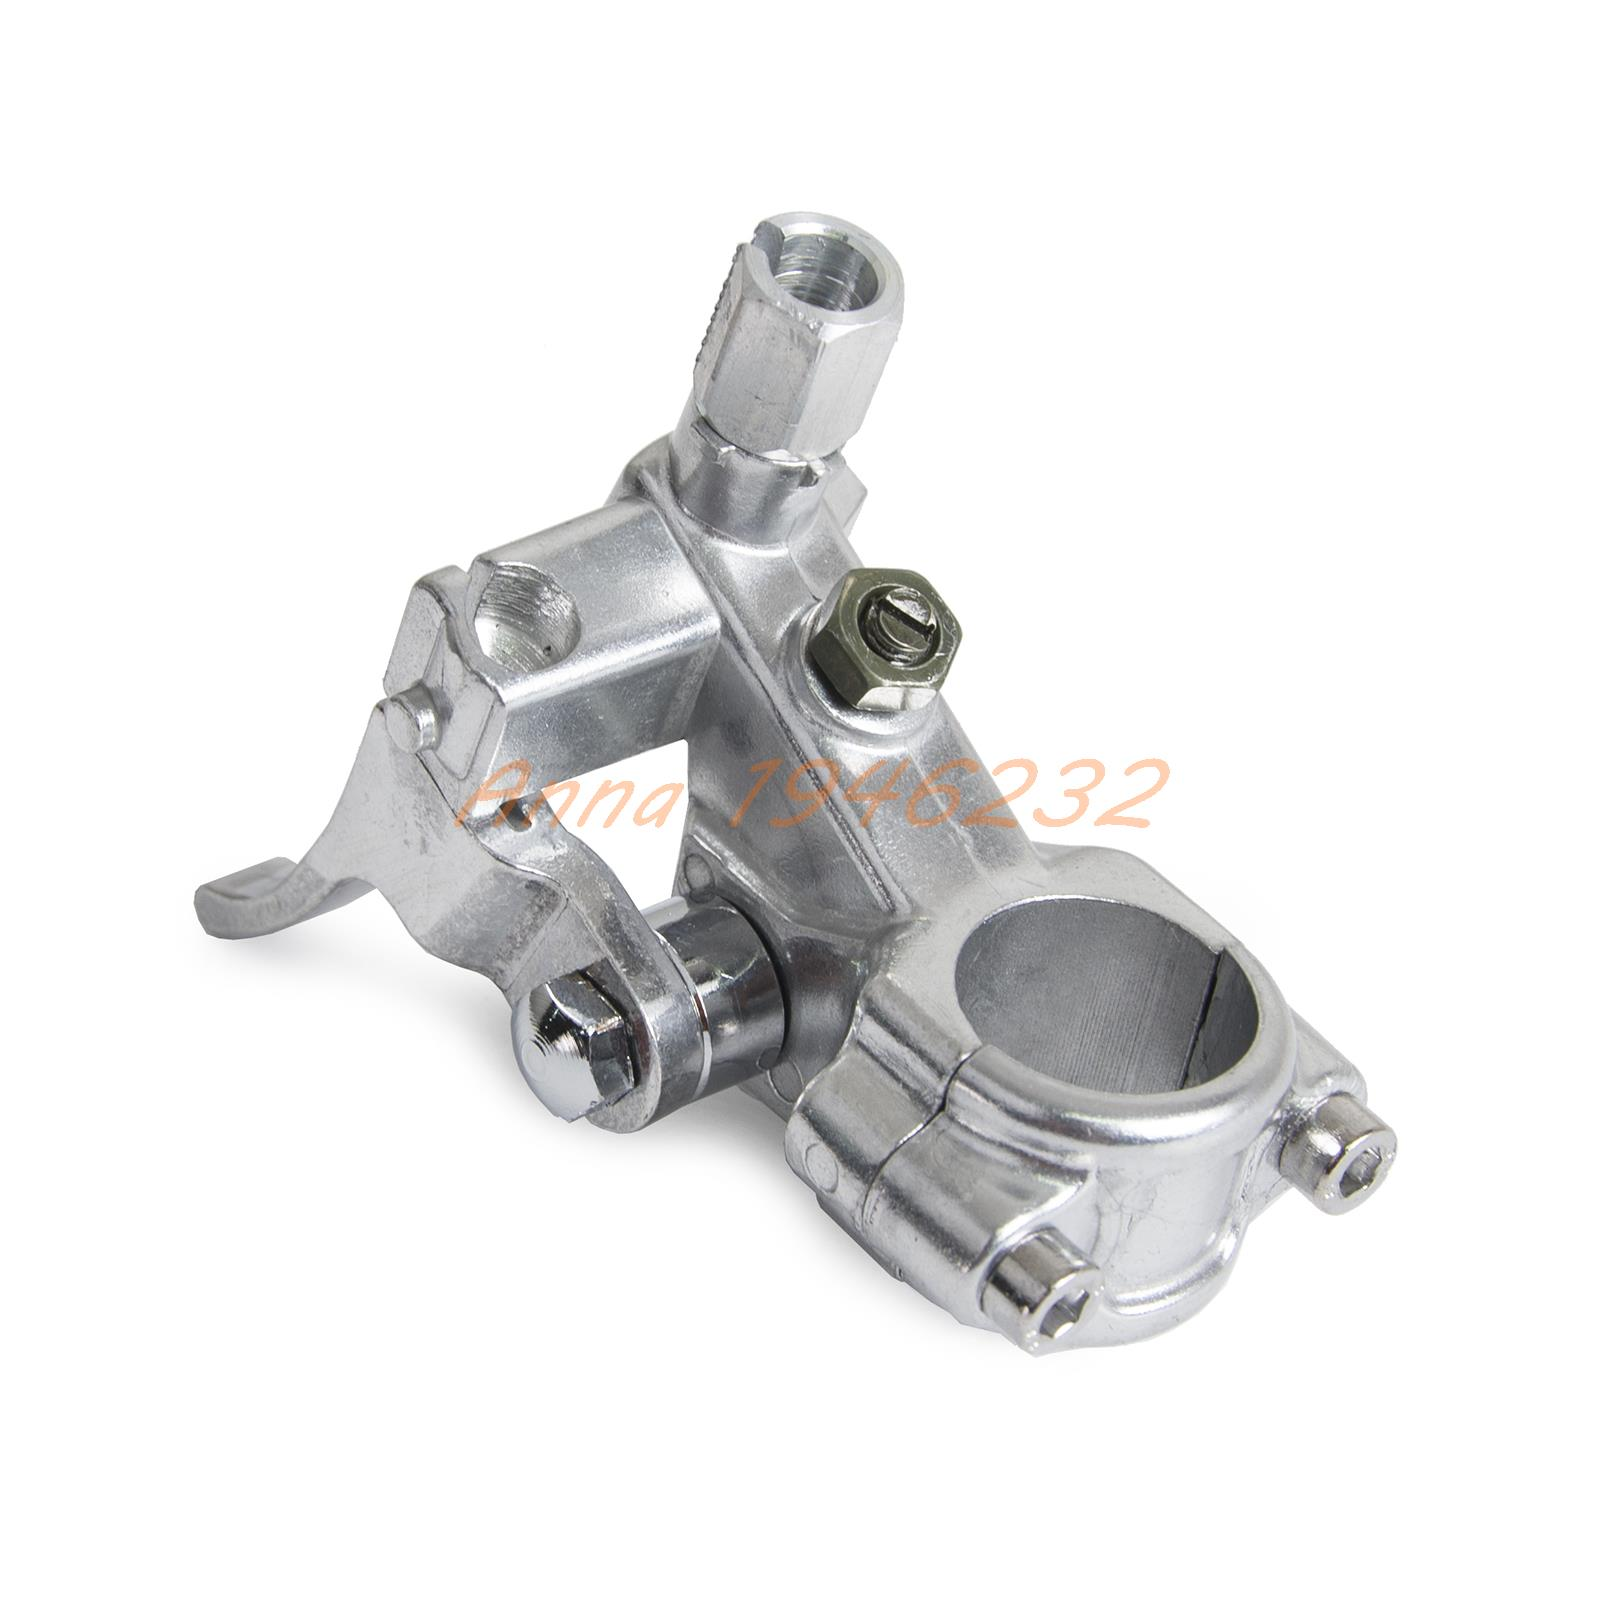 Motorcycle Clutch Lever Bracket For Honda CRF250R CRF450R 2004-2009 CRF250X CRF450X 2005-2016 CRF 250 450 R X nicecnc clutch lever bracket for honda crf250r 2004 2009 crf450r 04 08 crf250x 04 16 crf450x 2005 2016 crf 250r 450r 250x 450x